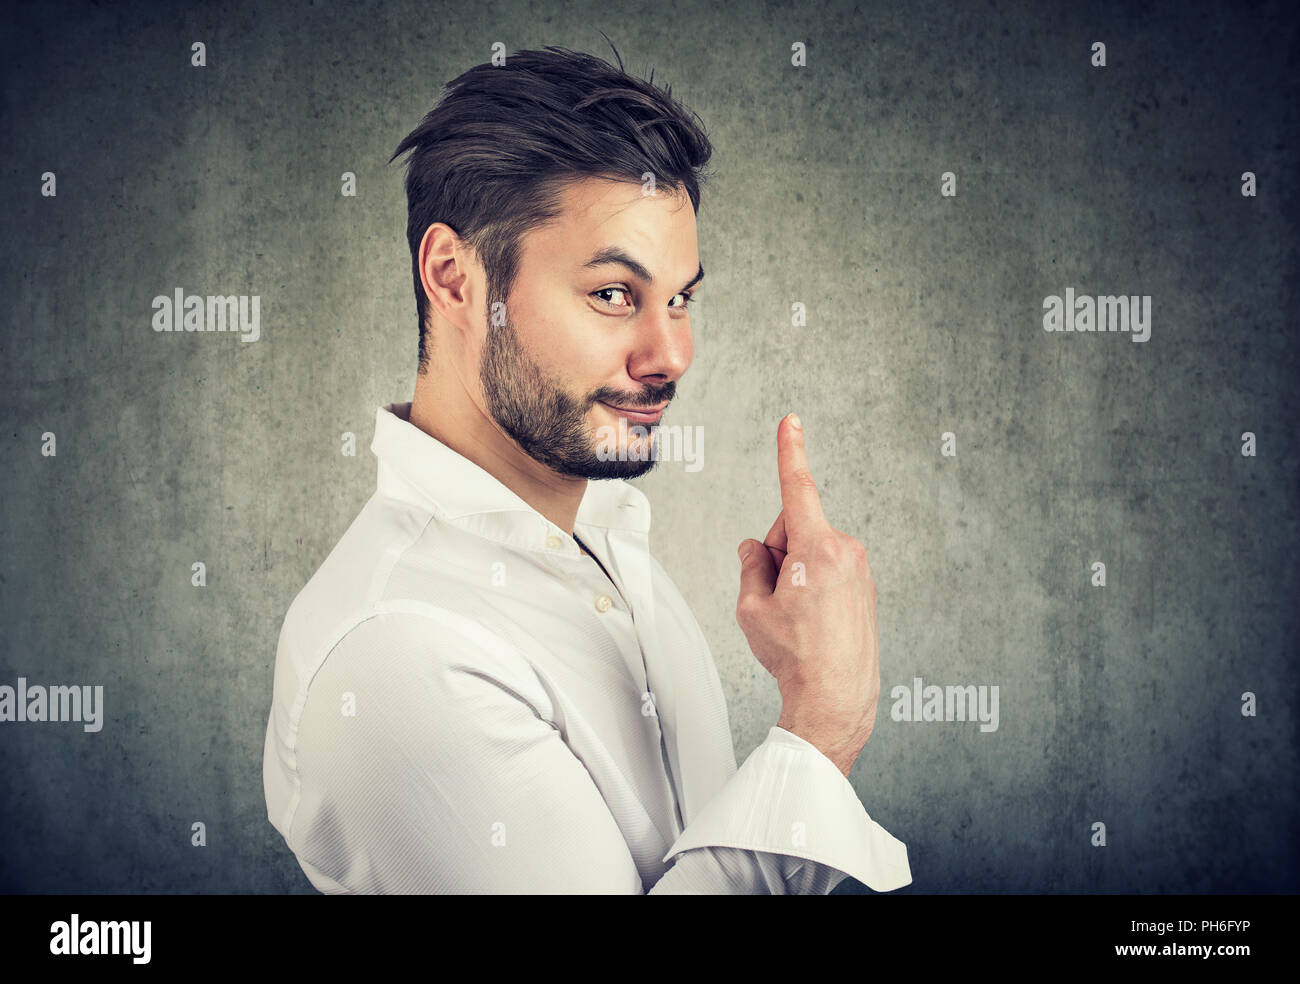 Handsome bearded man holding finger up for number one being ironic on gray background - Stock Image